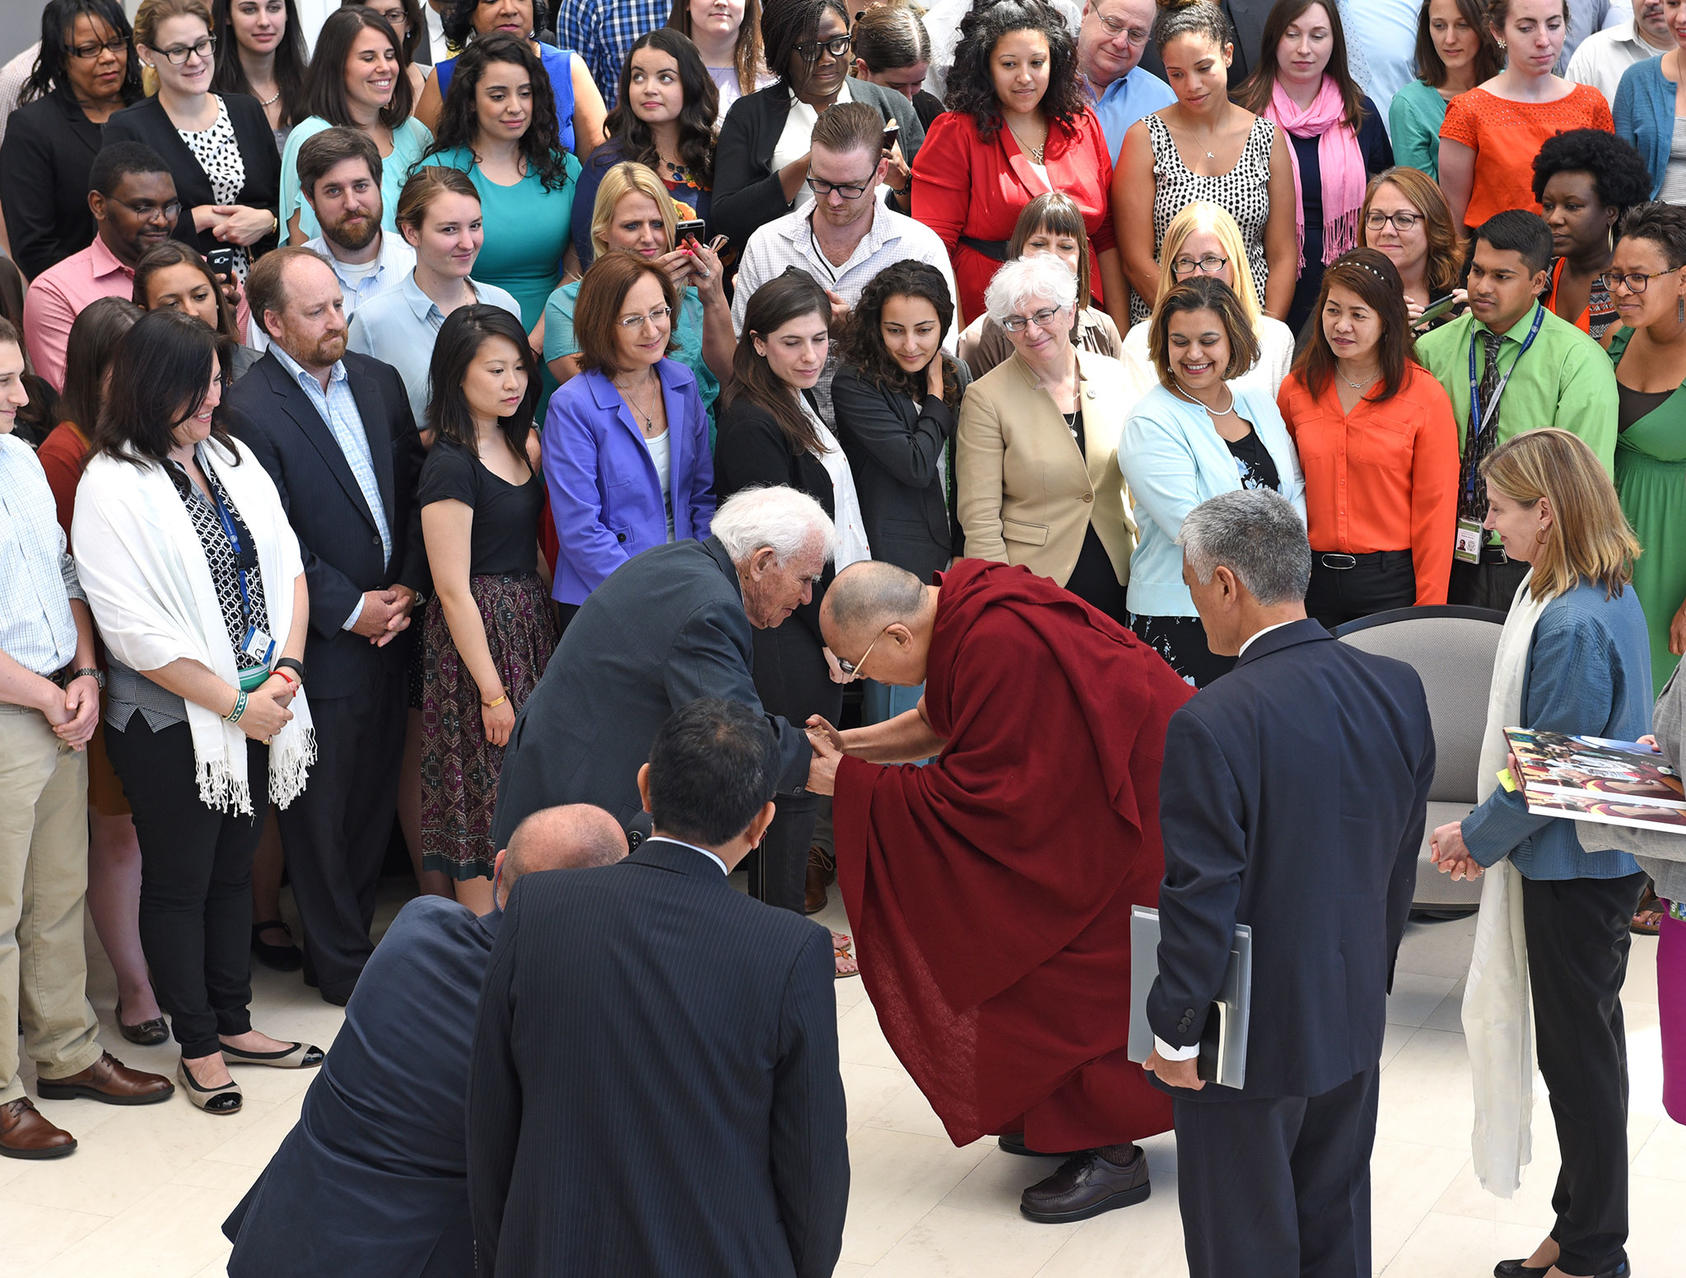 landrum bolling with Hi Holiness the Dalai Lama